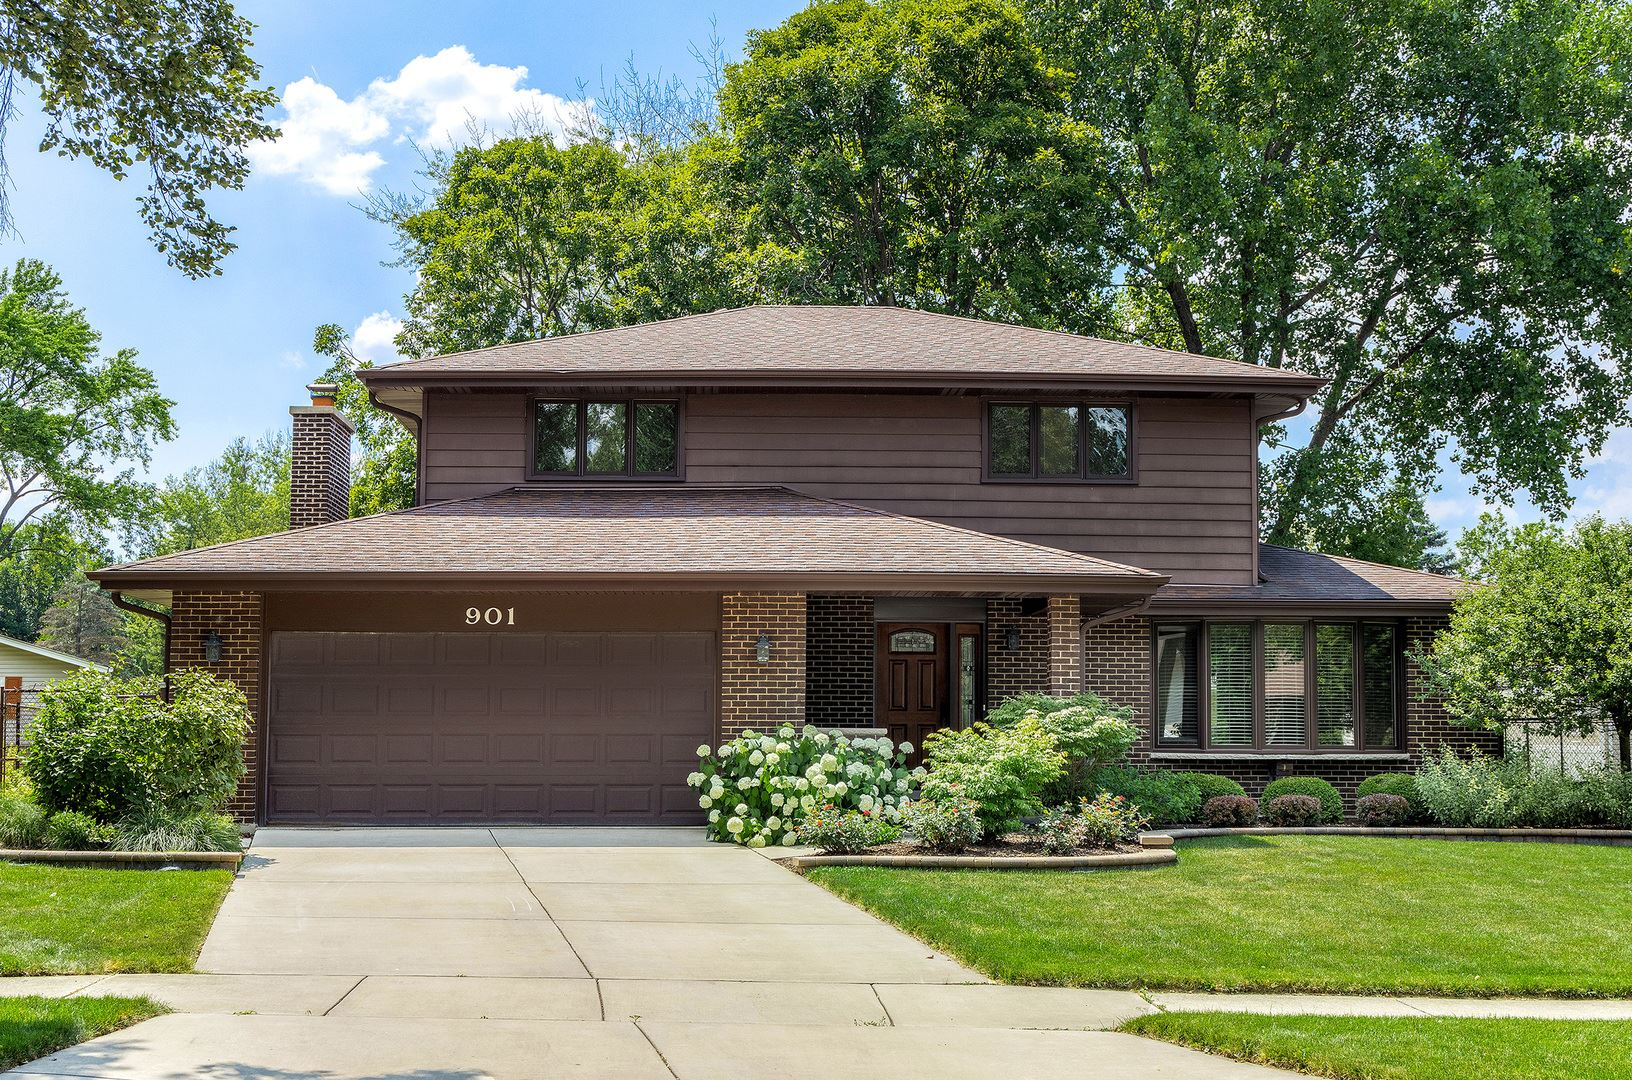 901 Lancaster Avenue, Downers Grove, IL 60516 - #: 10776279